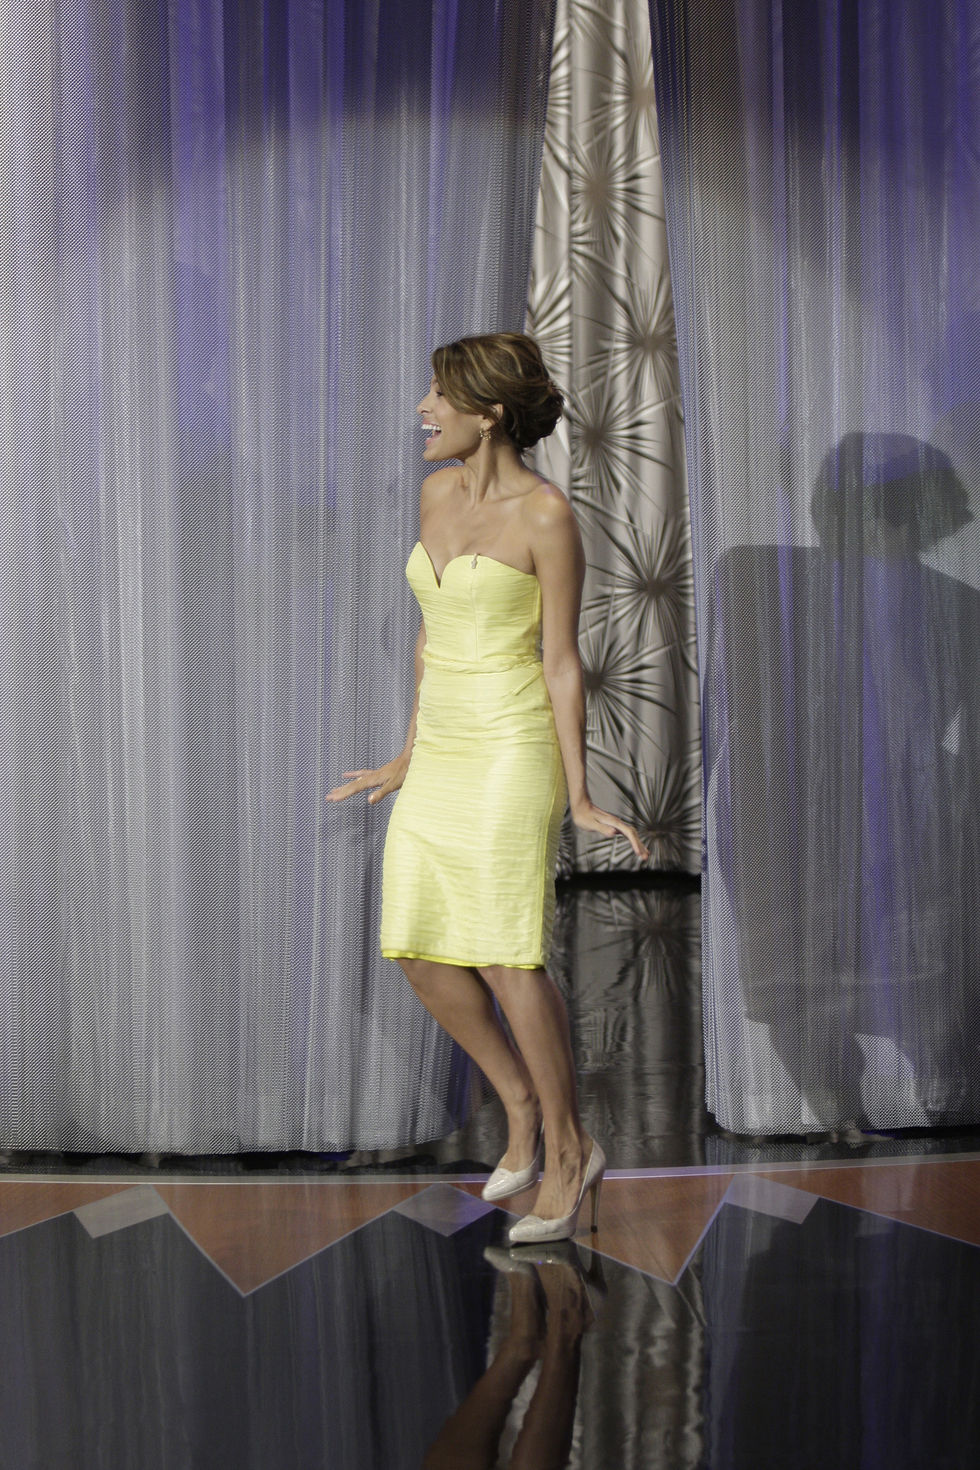 eva-mendes-at-tonight-show-with-conan-obrian-in-los-angeles-01